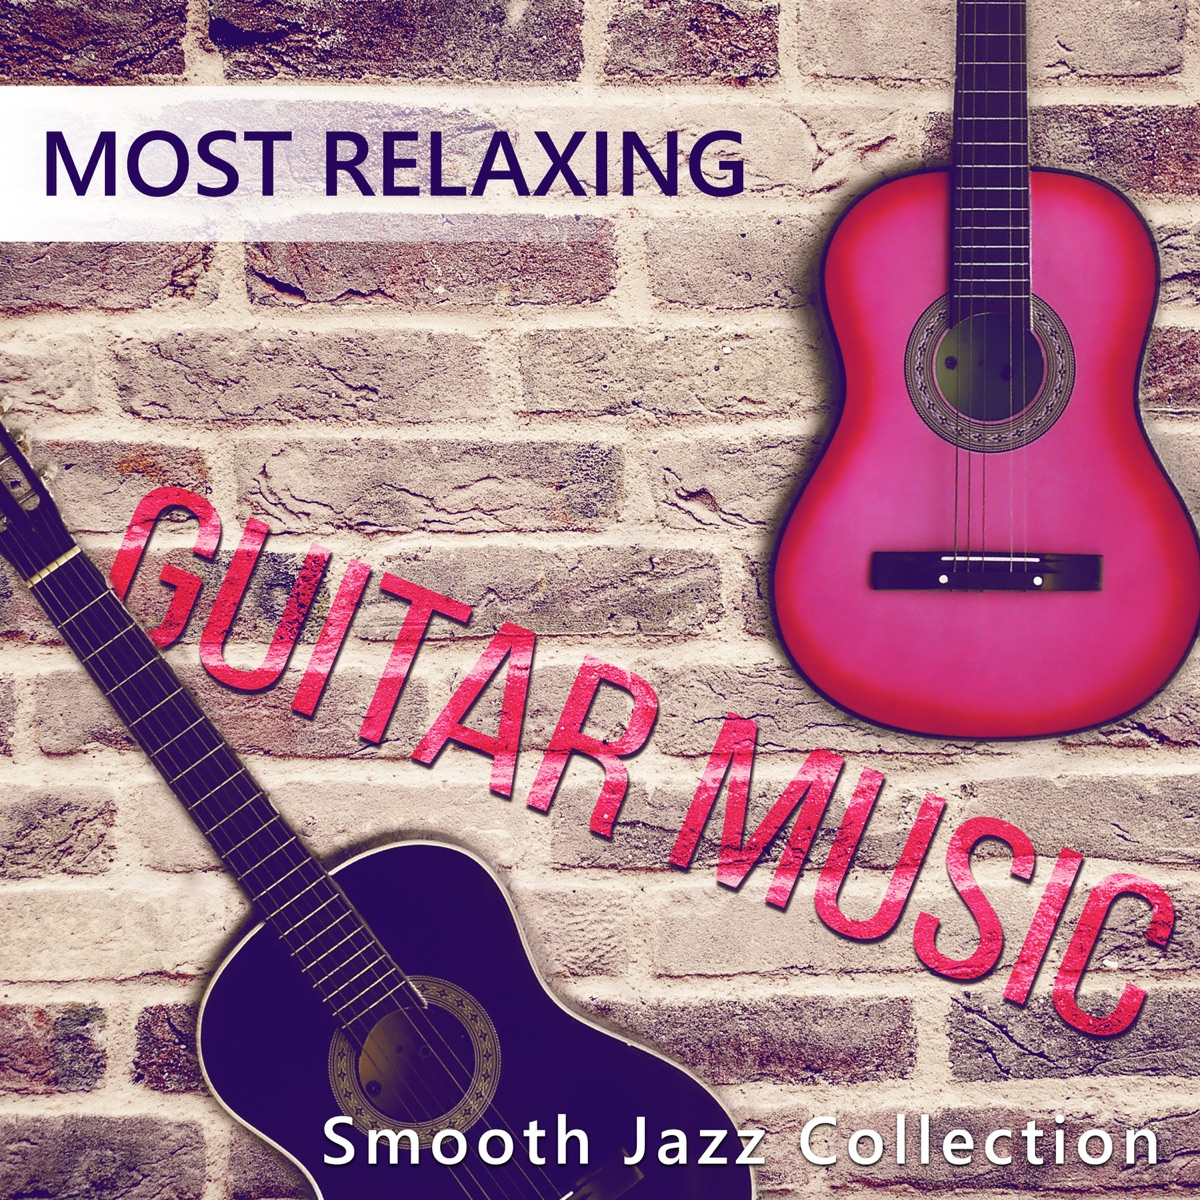 Most Relaxing Guitar Music: Smooth Jazz Collection - Music